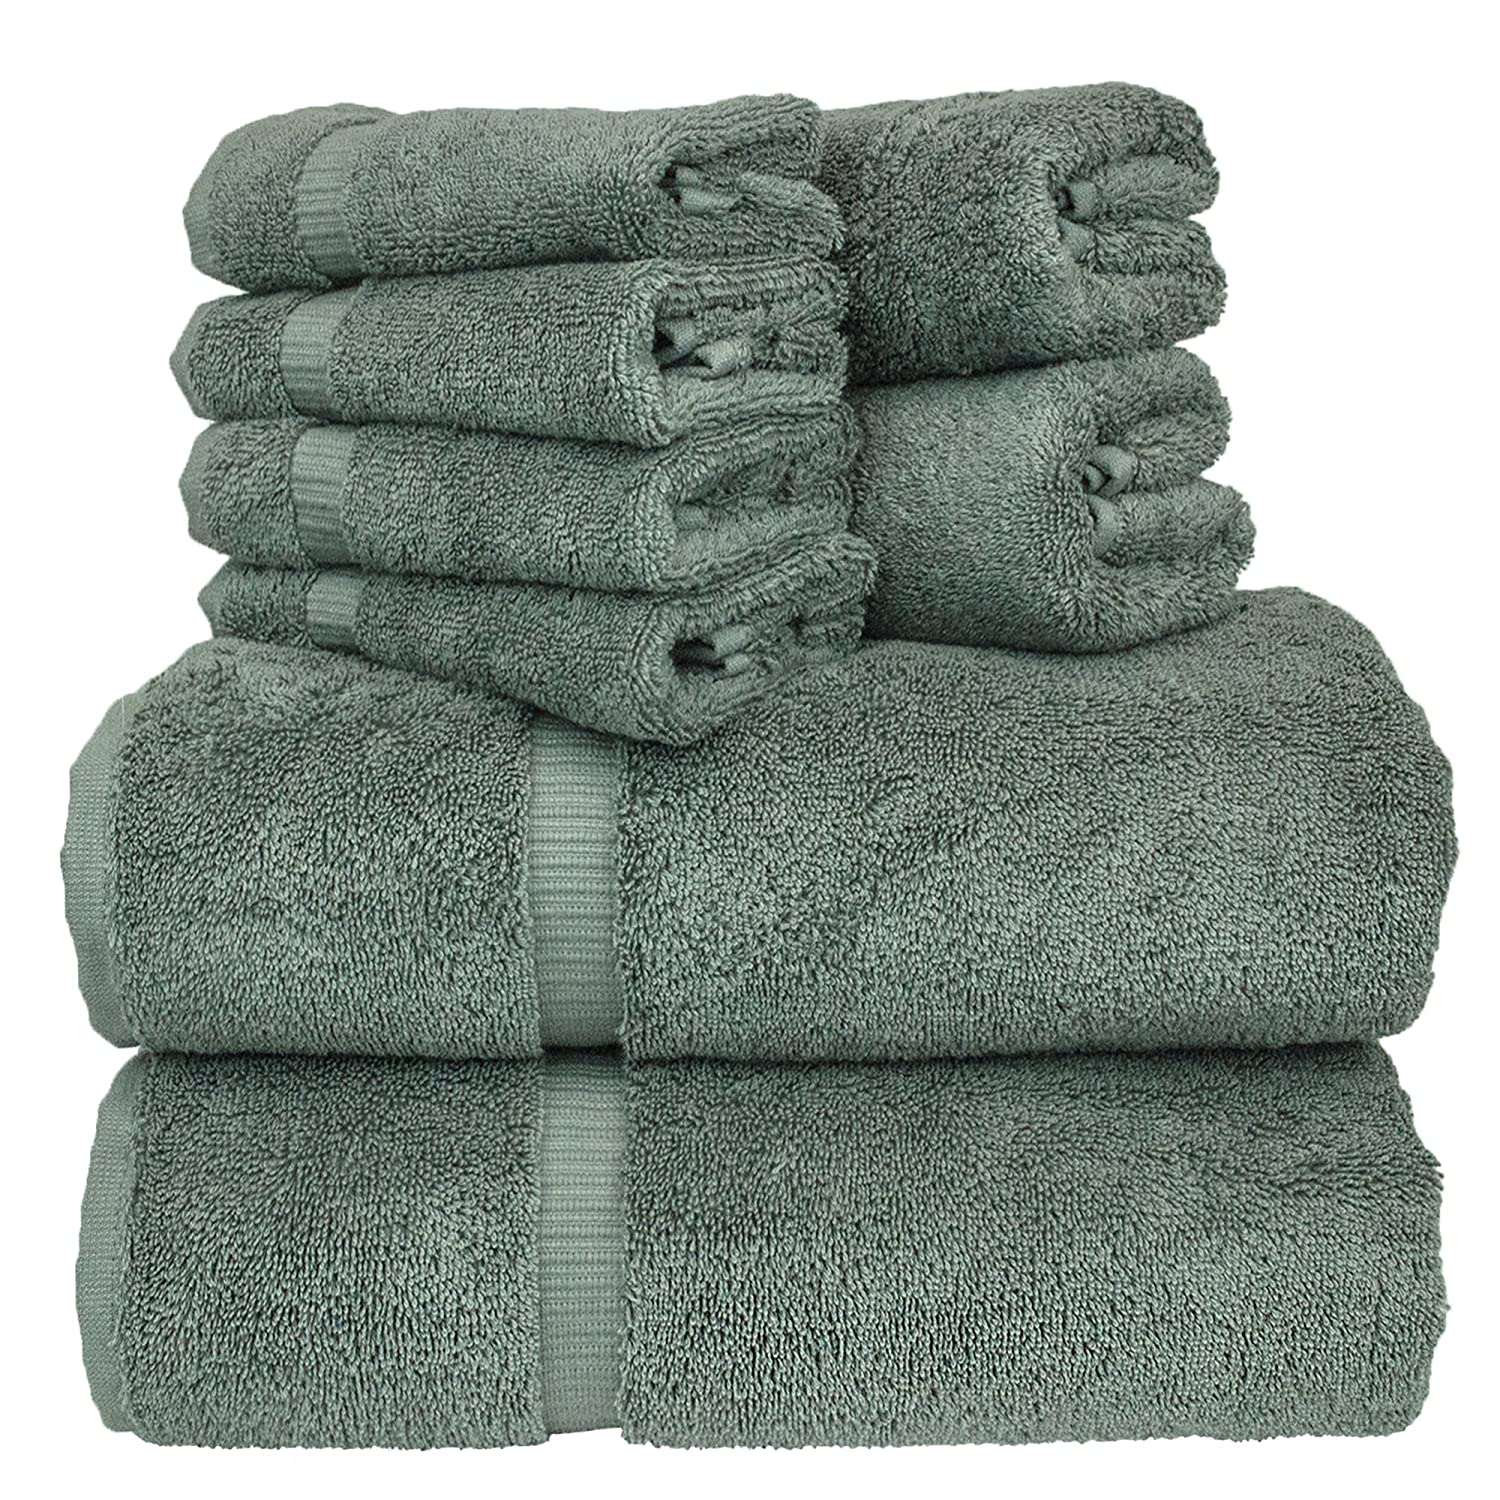 Amazon Luxury Hotel Spa Bath Towel Set Turkish Cotton Bundle Total 8 Piece 2 27X54 Hand 16X30 4 Washcloth 13x13